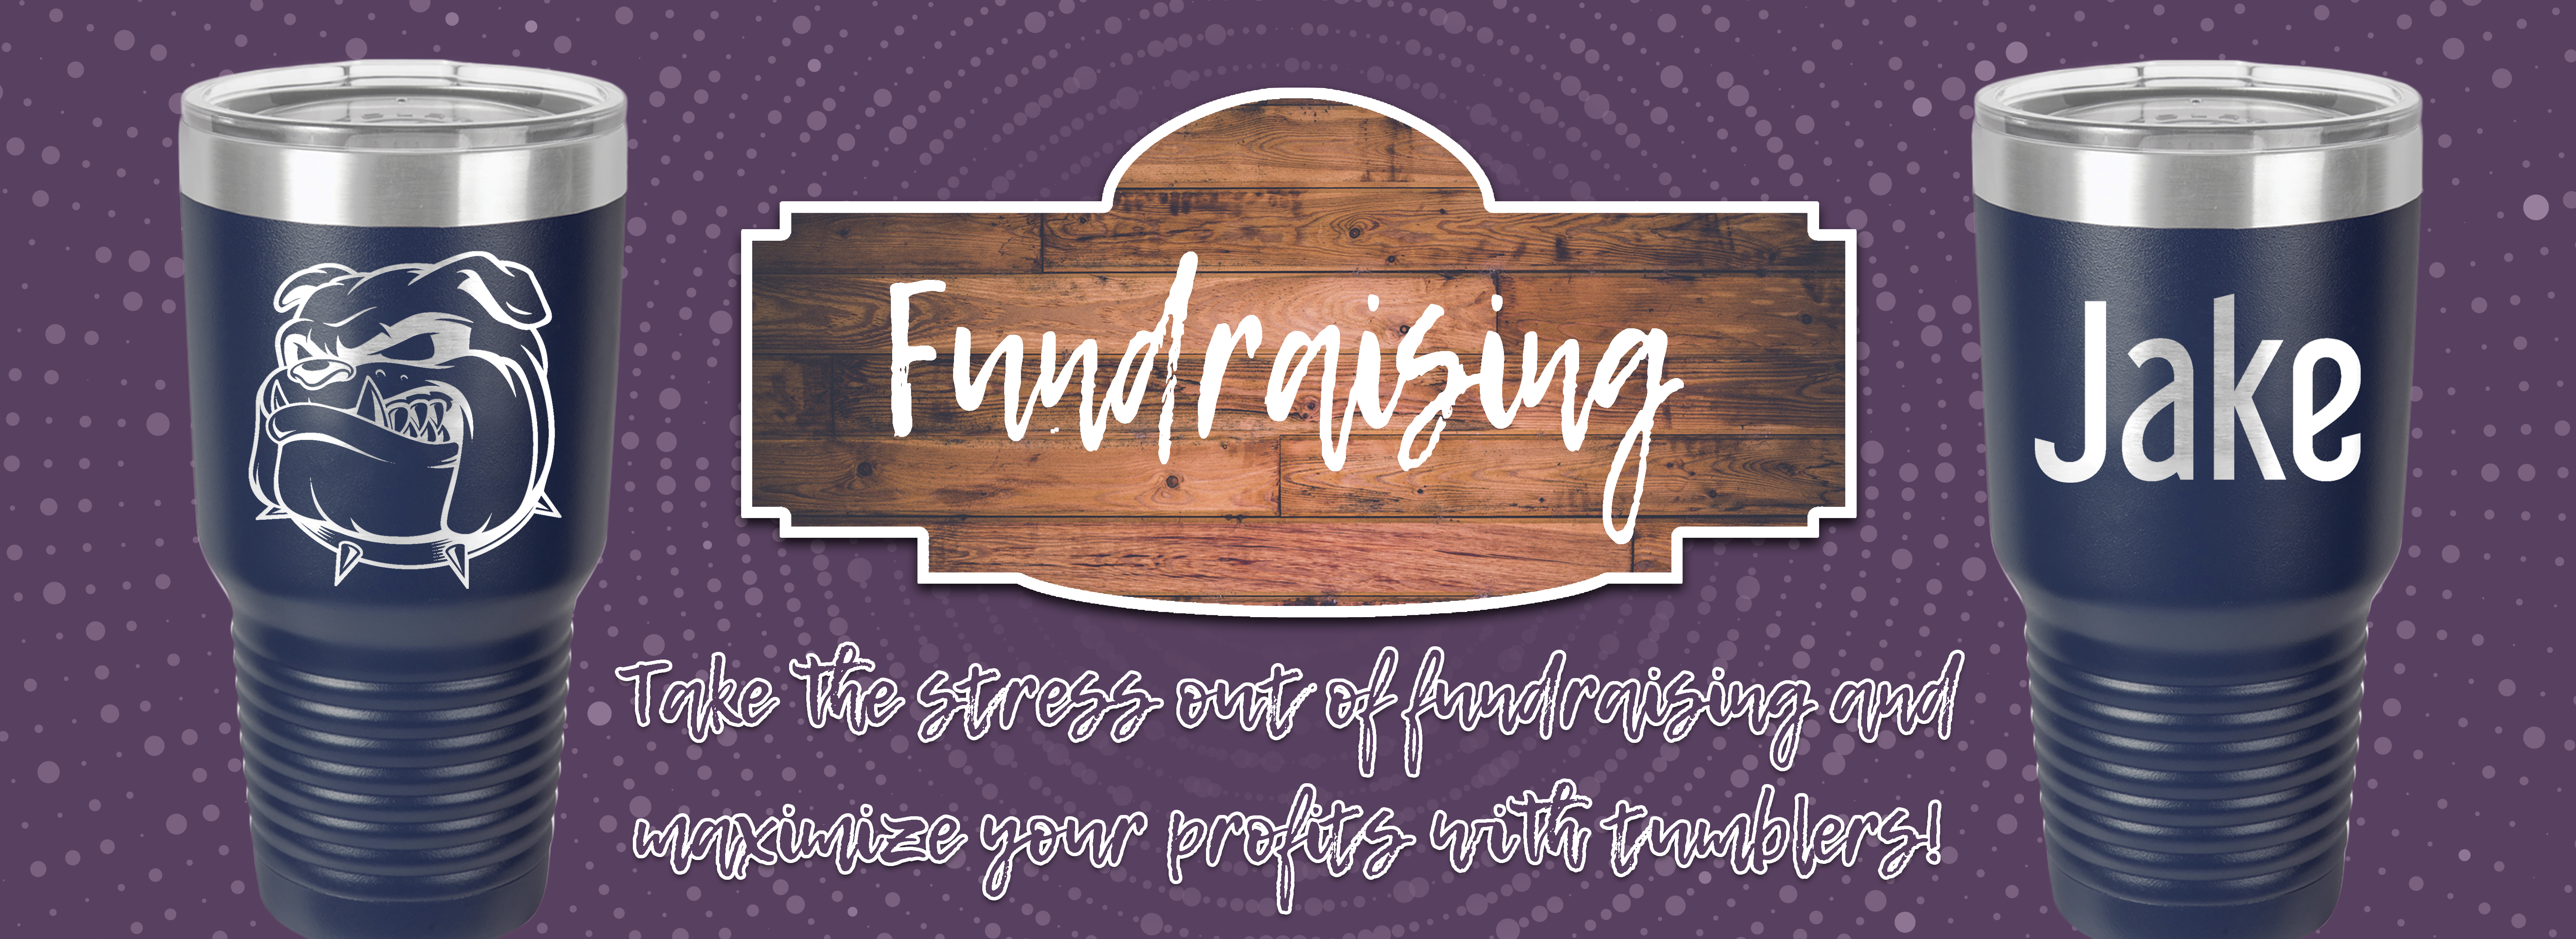 fundraising-page-banner3.jpg